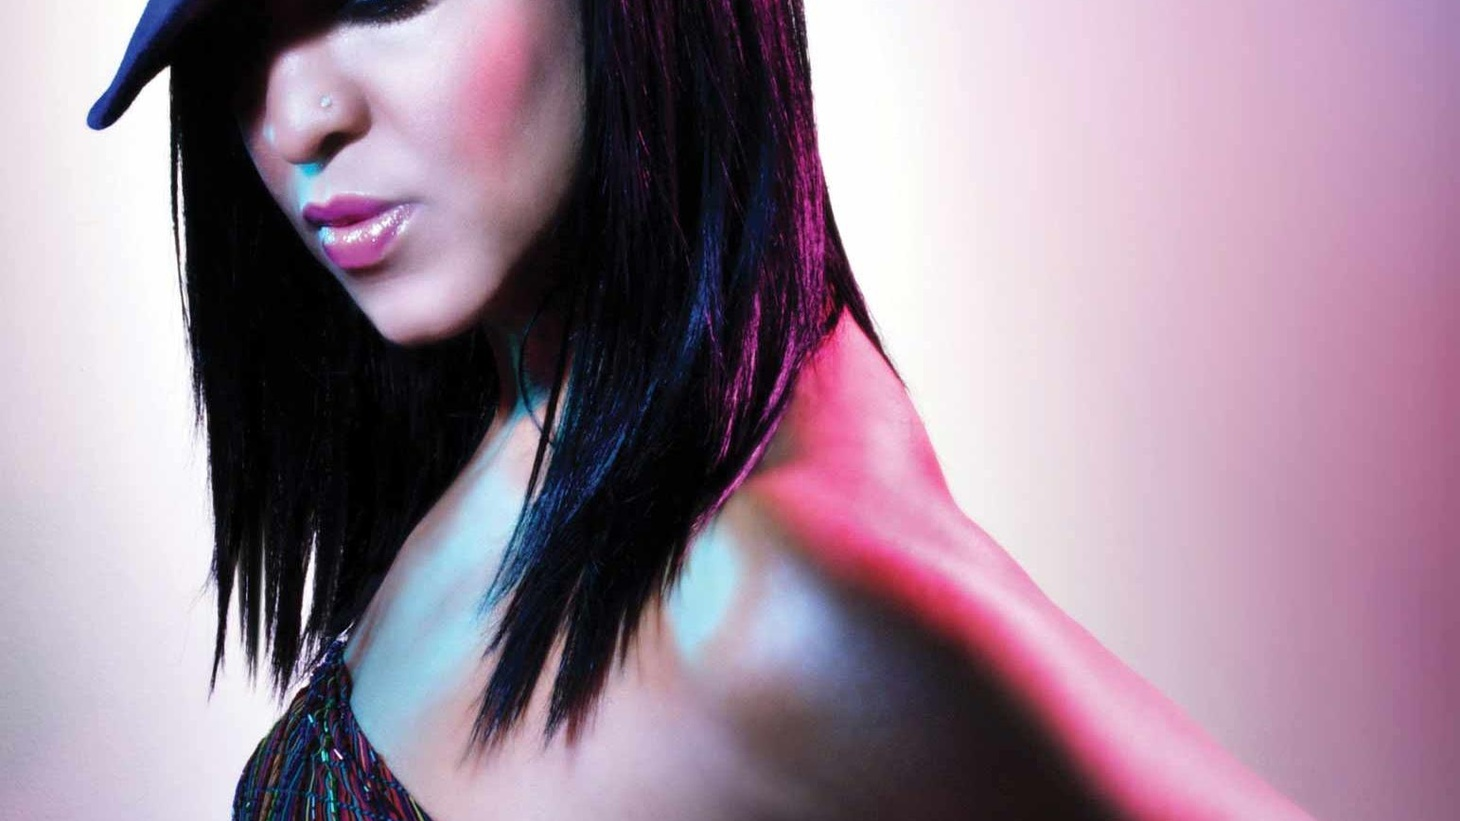 ...from Free. 